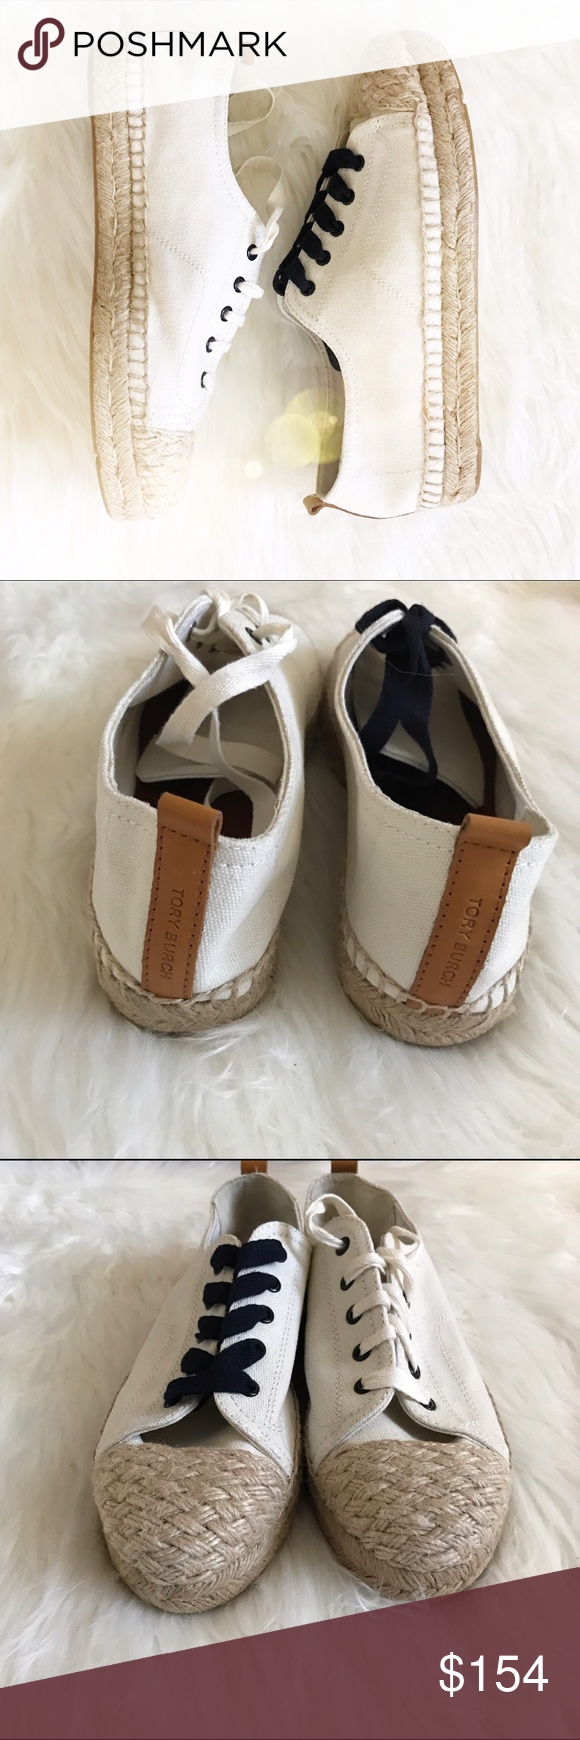 •NWOB• Tory Burch Carter Canvas lace up sneakers✨ Brand new, size 8.5! 💕 Tory Burch Shoes Espadrilles